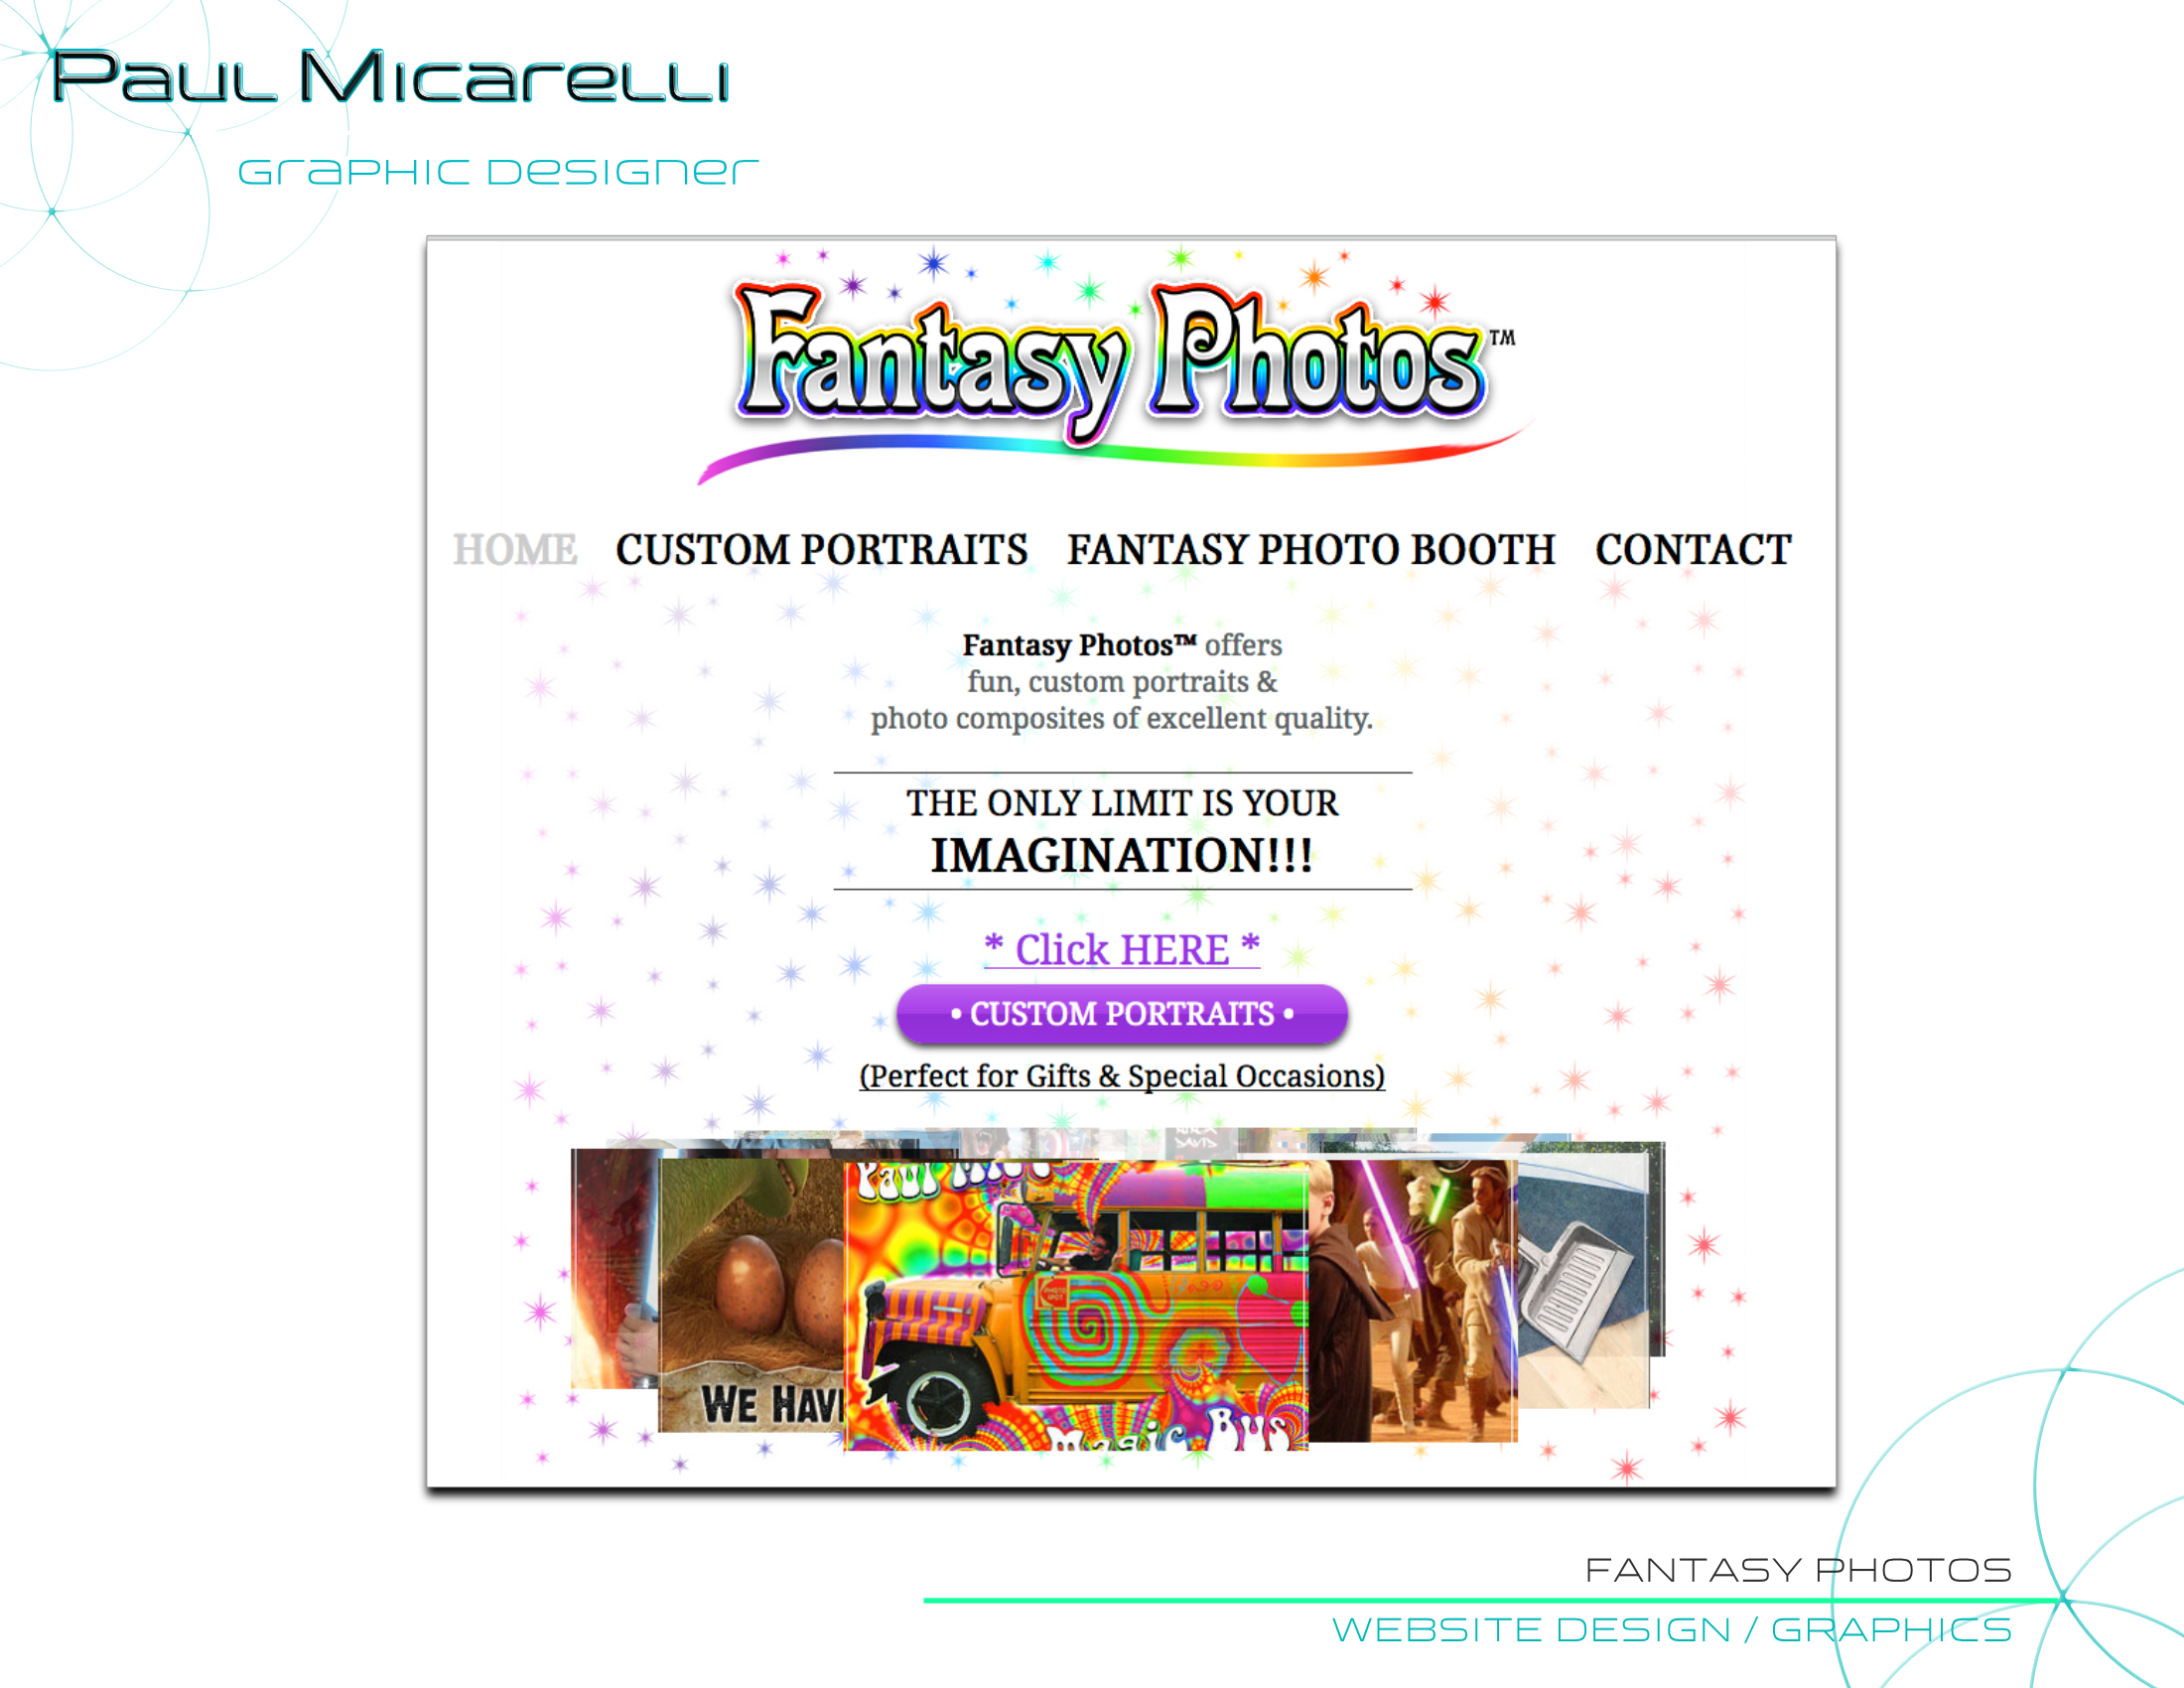 Paul-Micarelli-Fantasy Photos Website